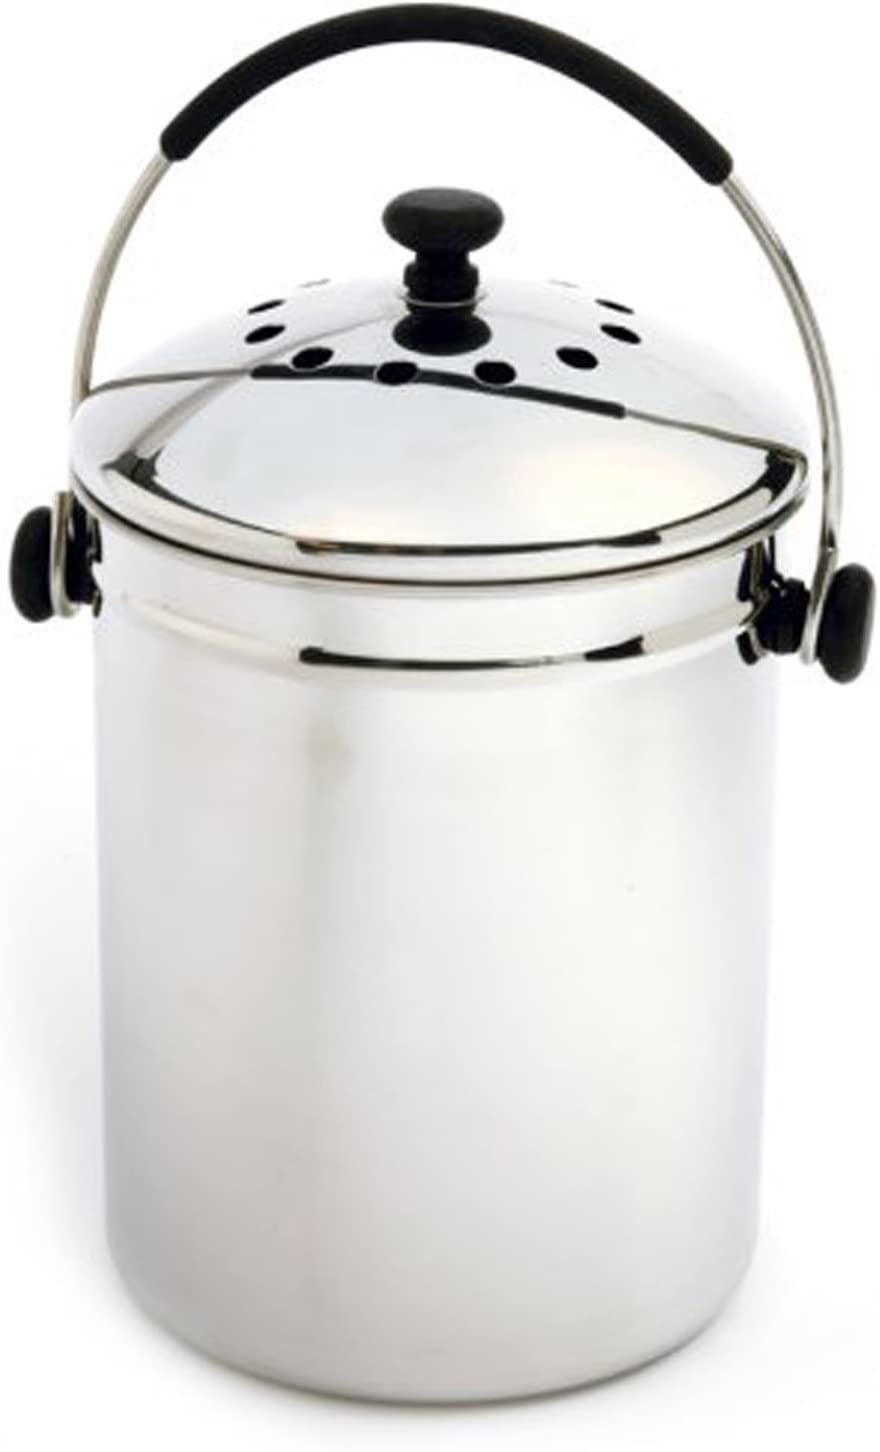 Norpro Grip EZ Stainless Steel Compost Keeper